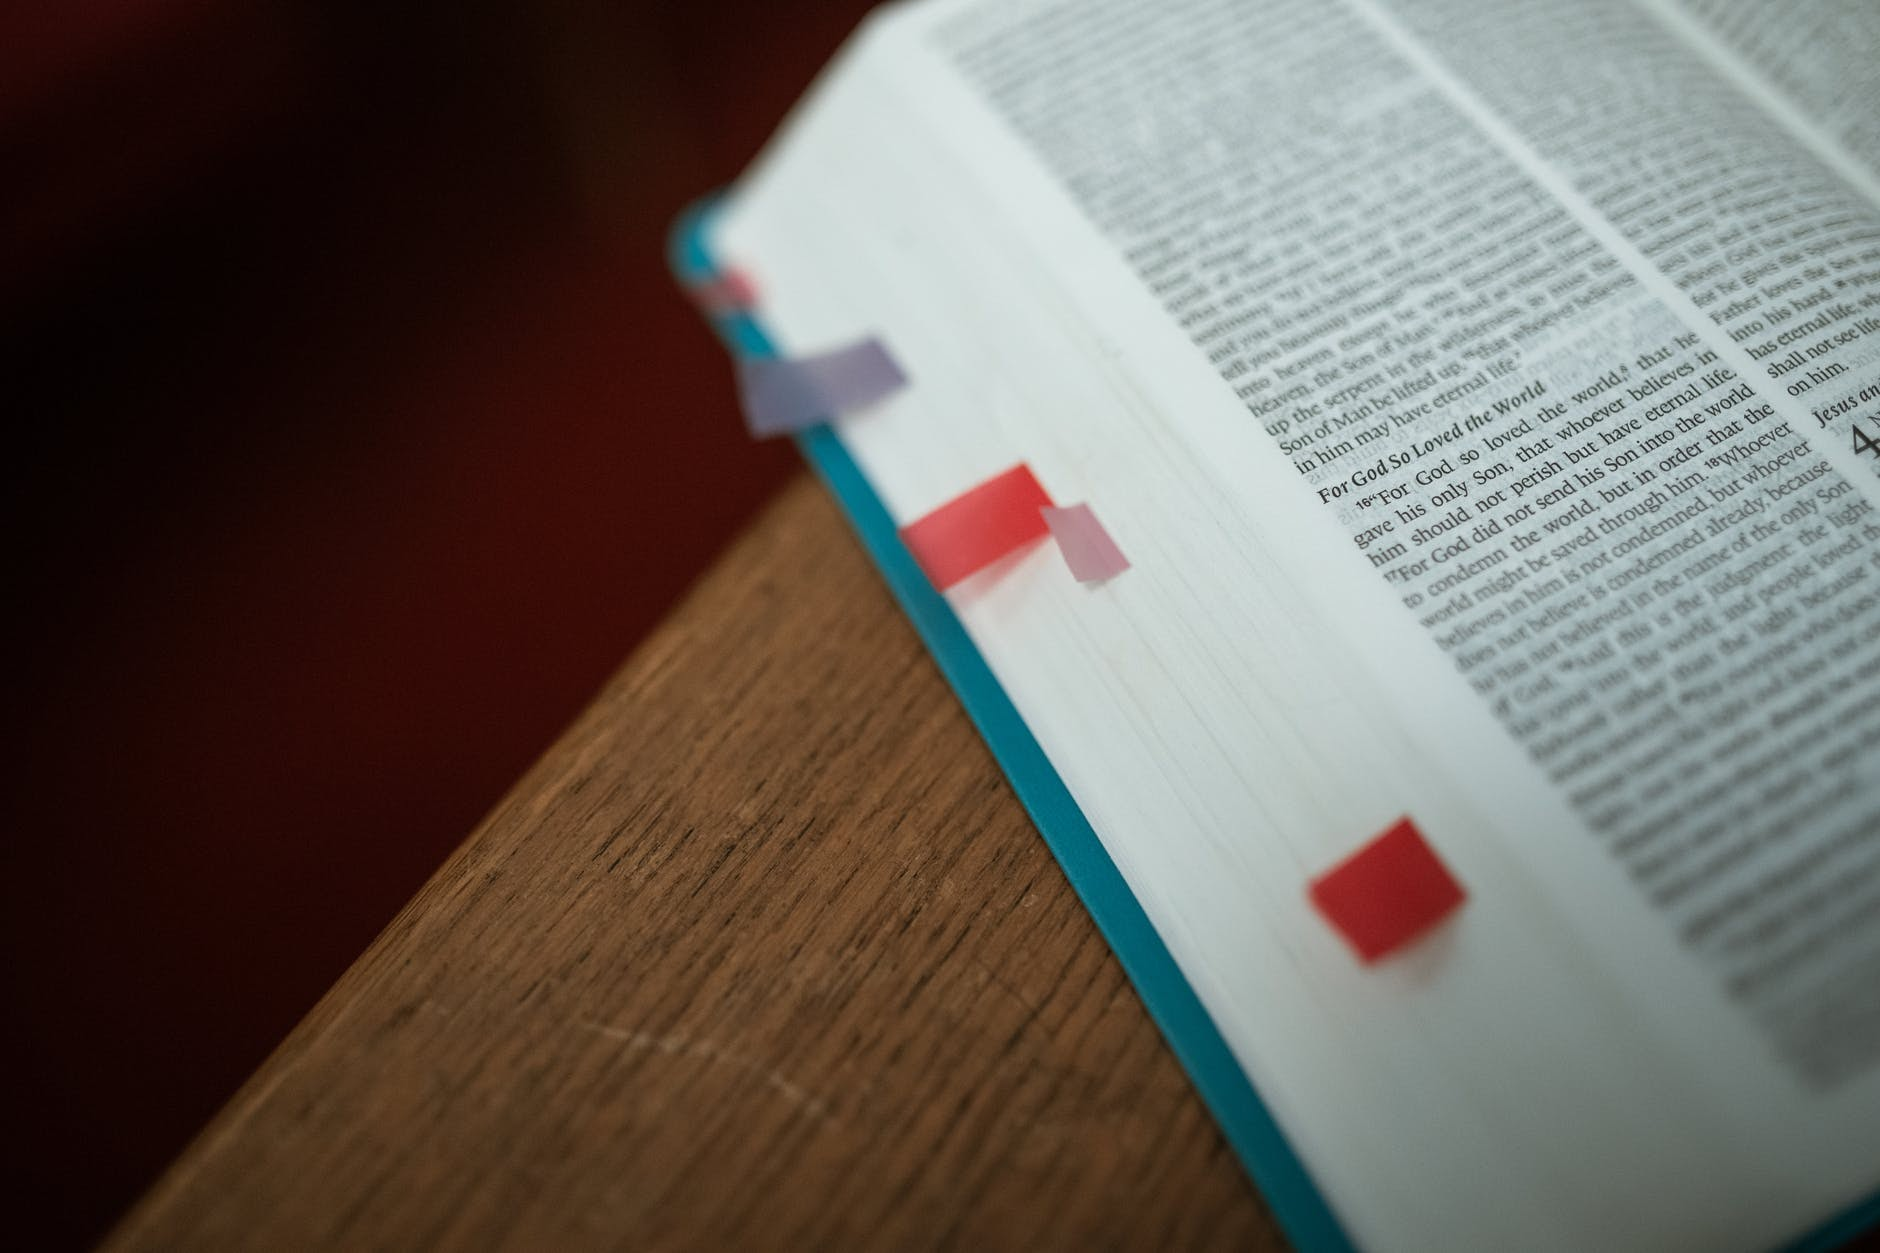 the Bible with bookmarked pages